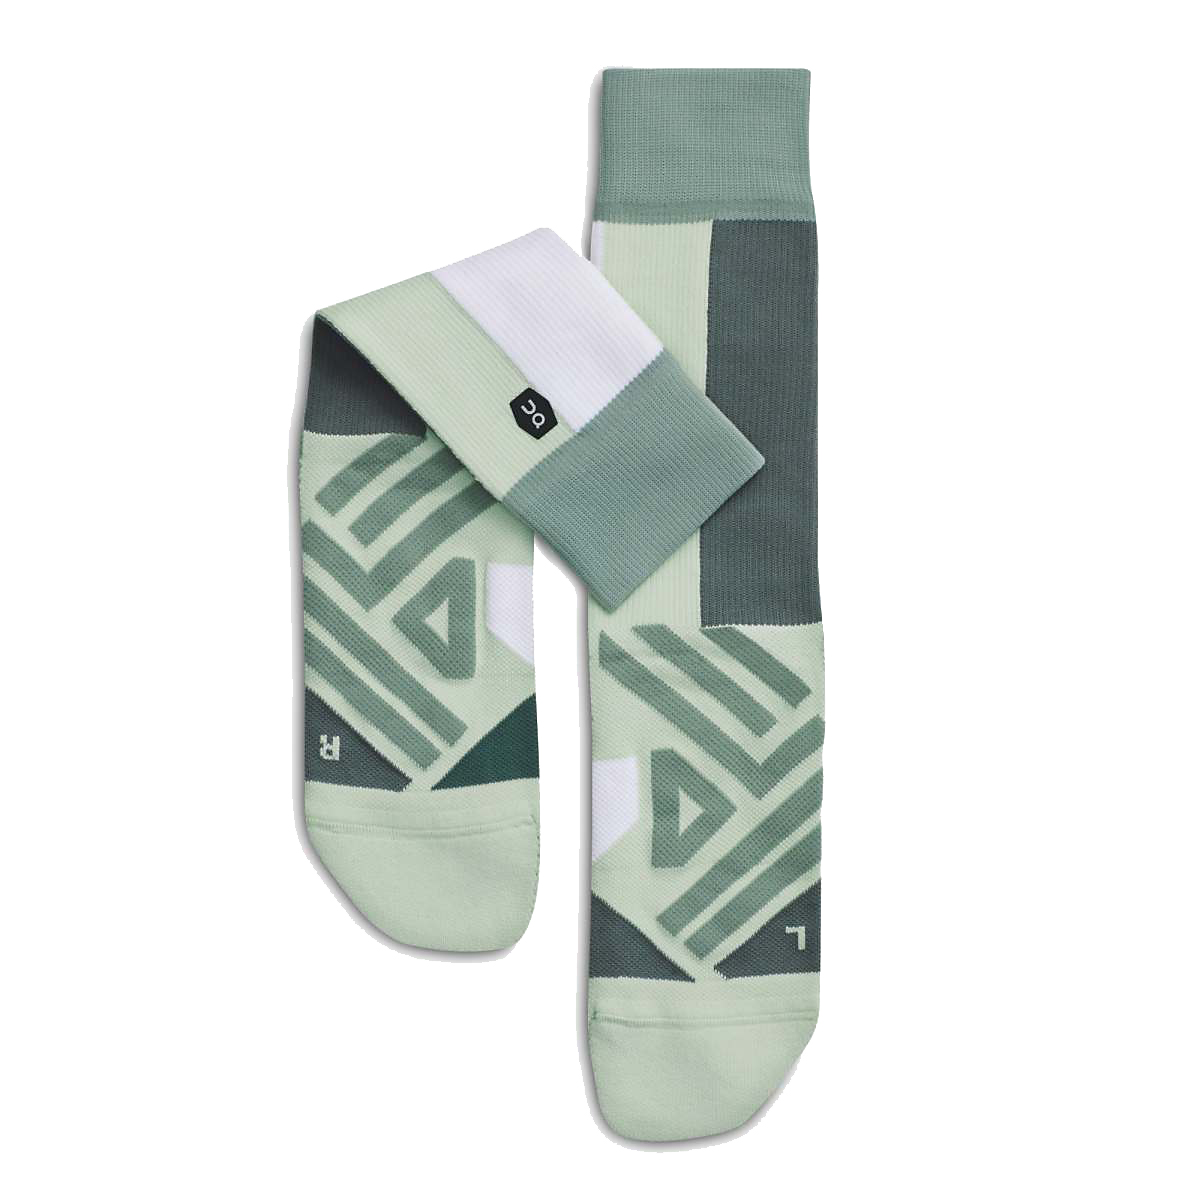 Women's On High Sock - Color: Mineral/White - Size: XS, Mineral/White, large, image 1